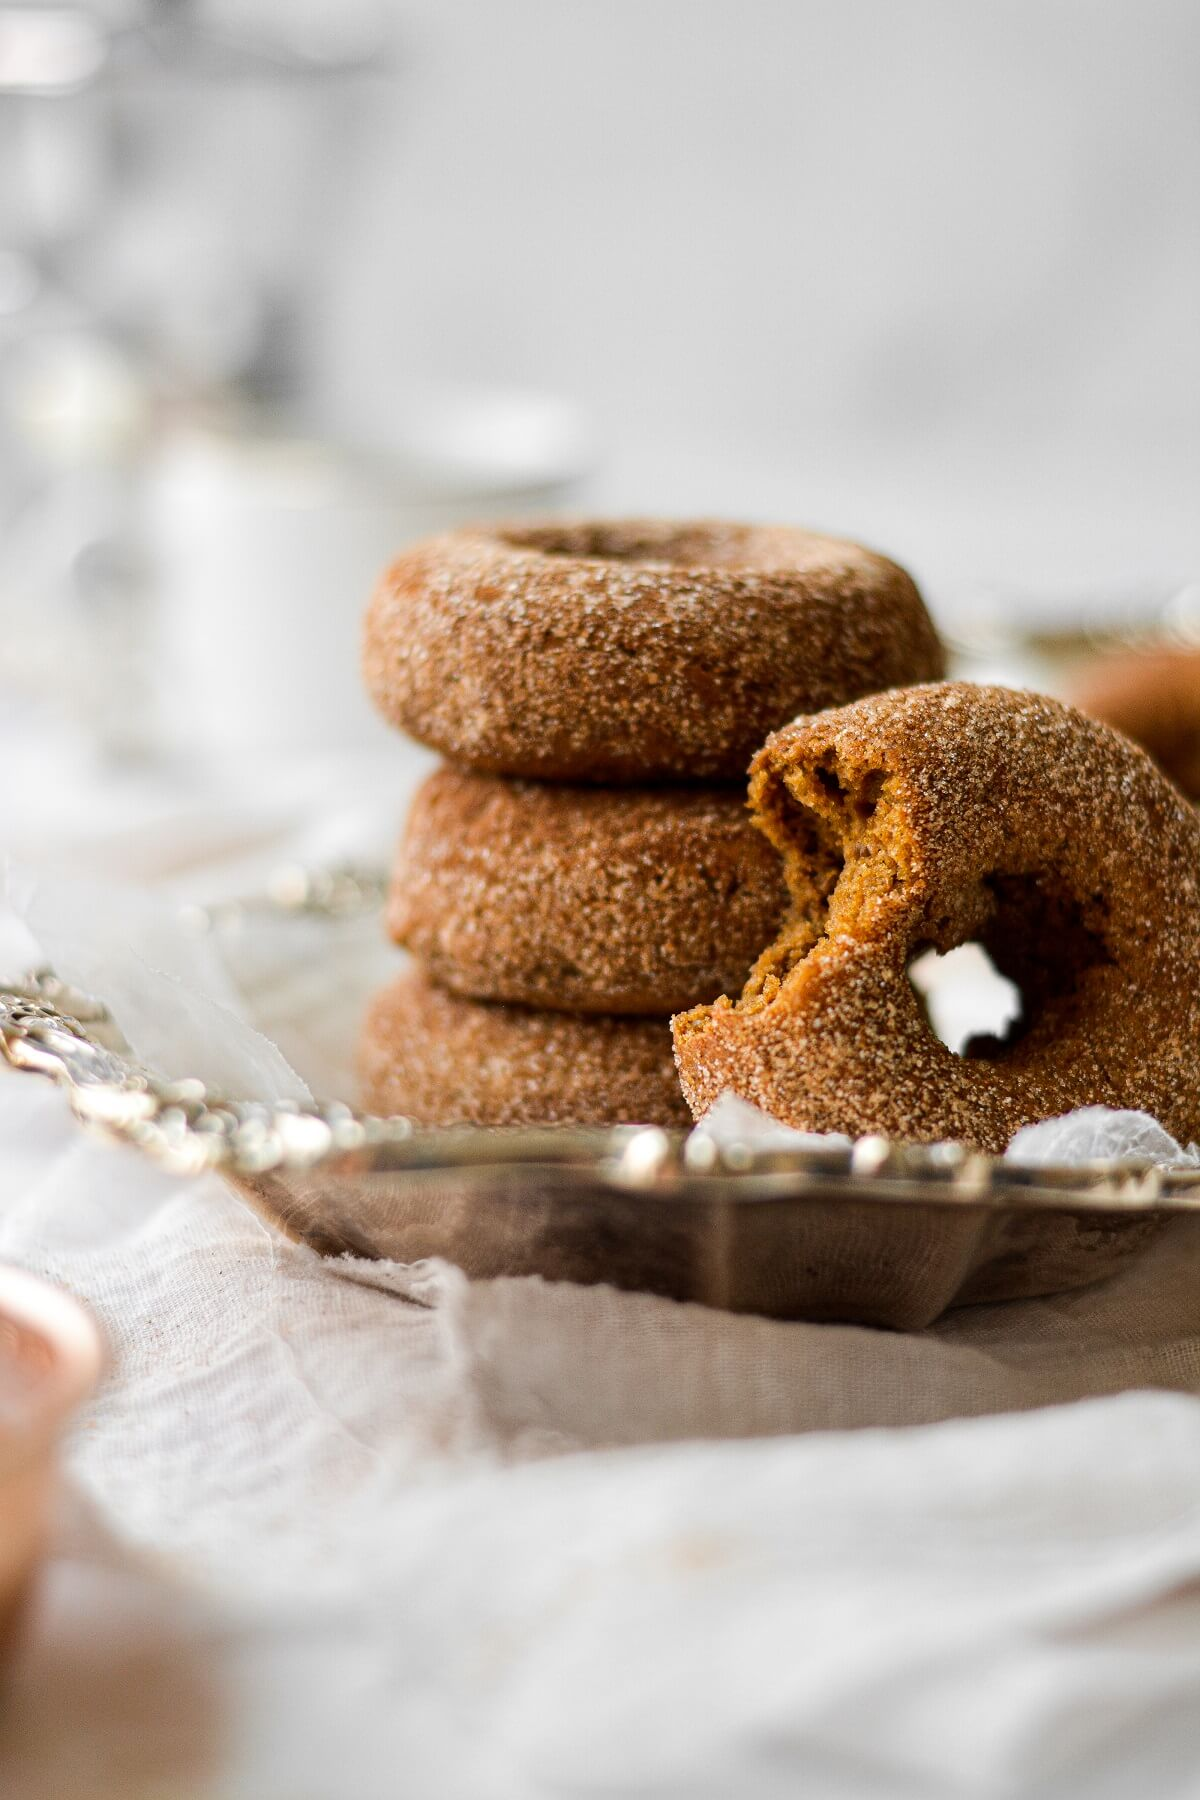 Baked pumpkin spice donuts, coated in cinnamon sugar, one with a bite taken out of it, stacked on a silver plate.